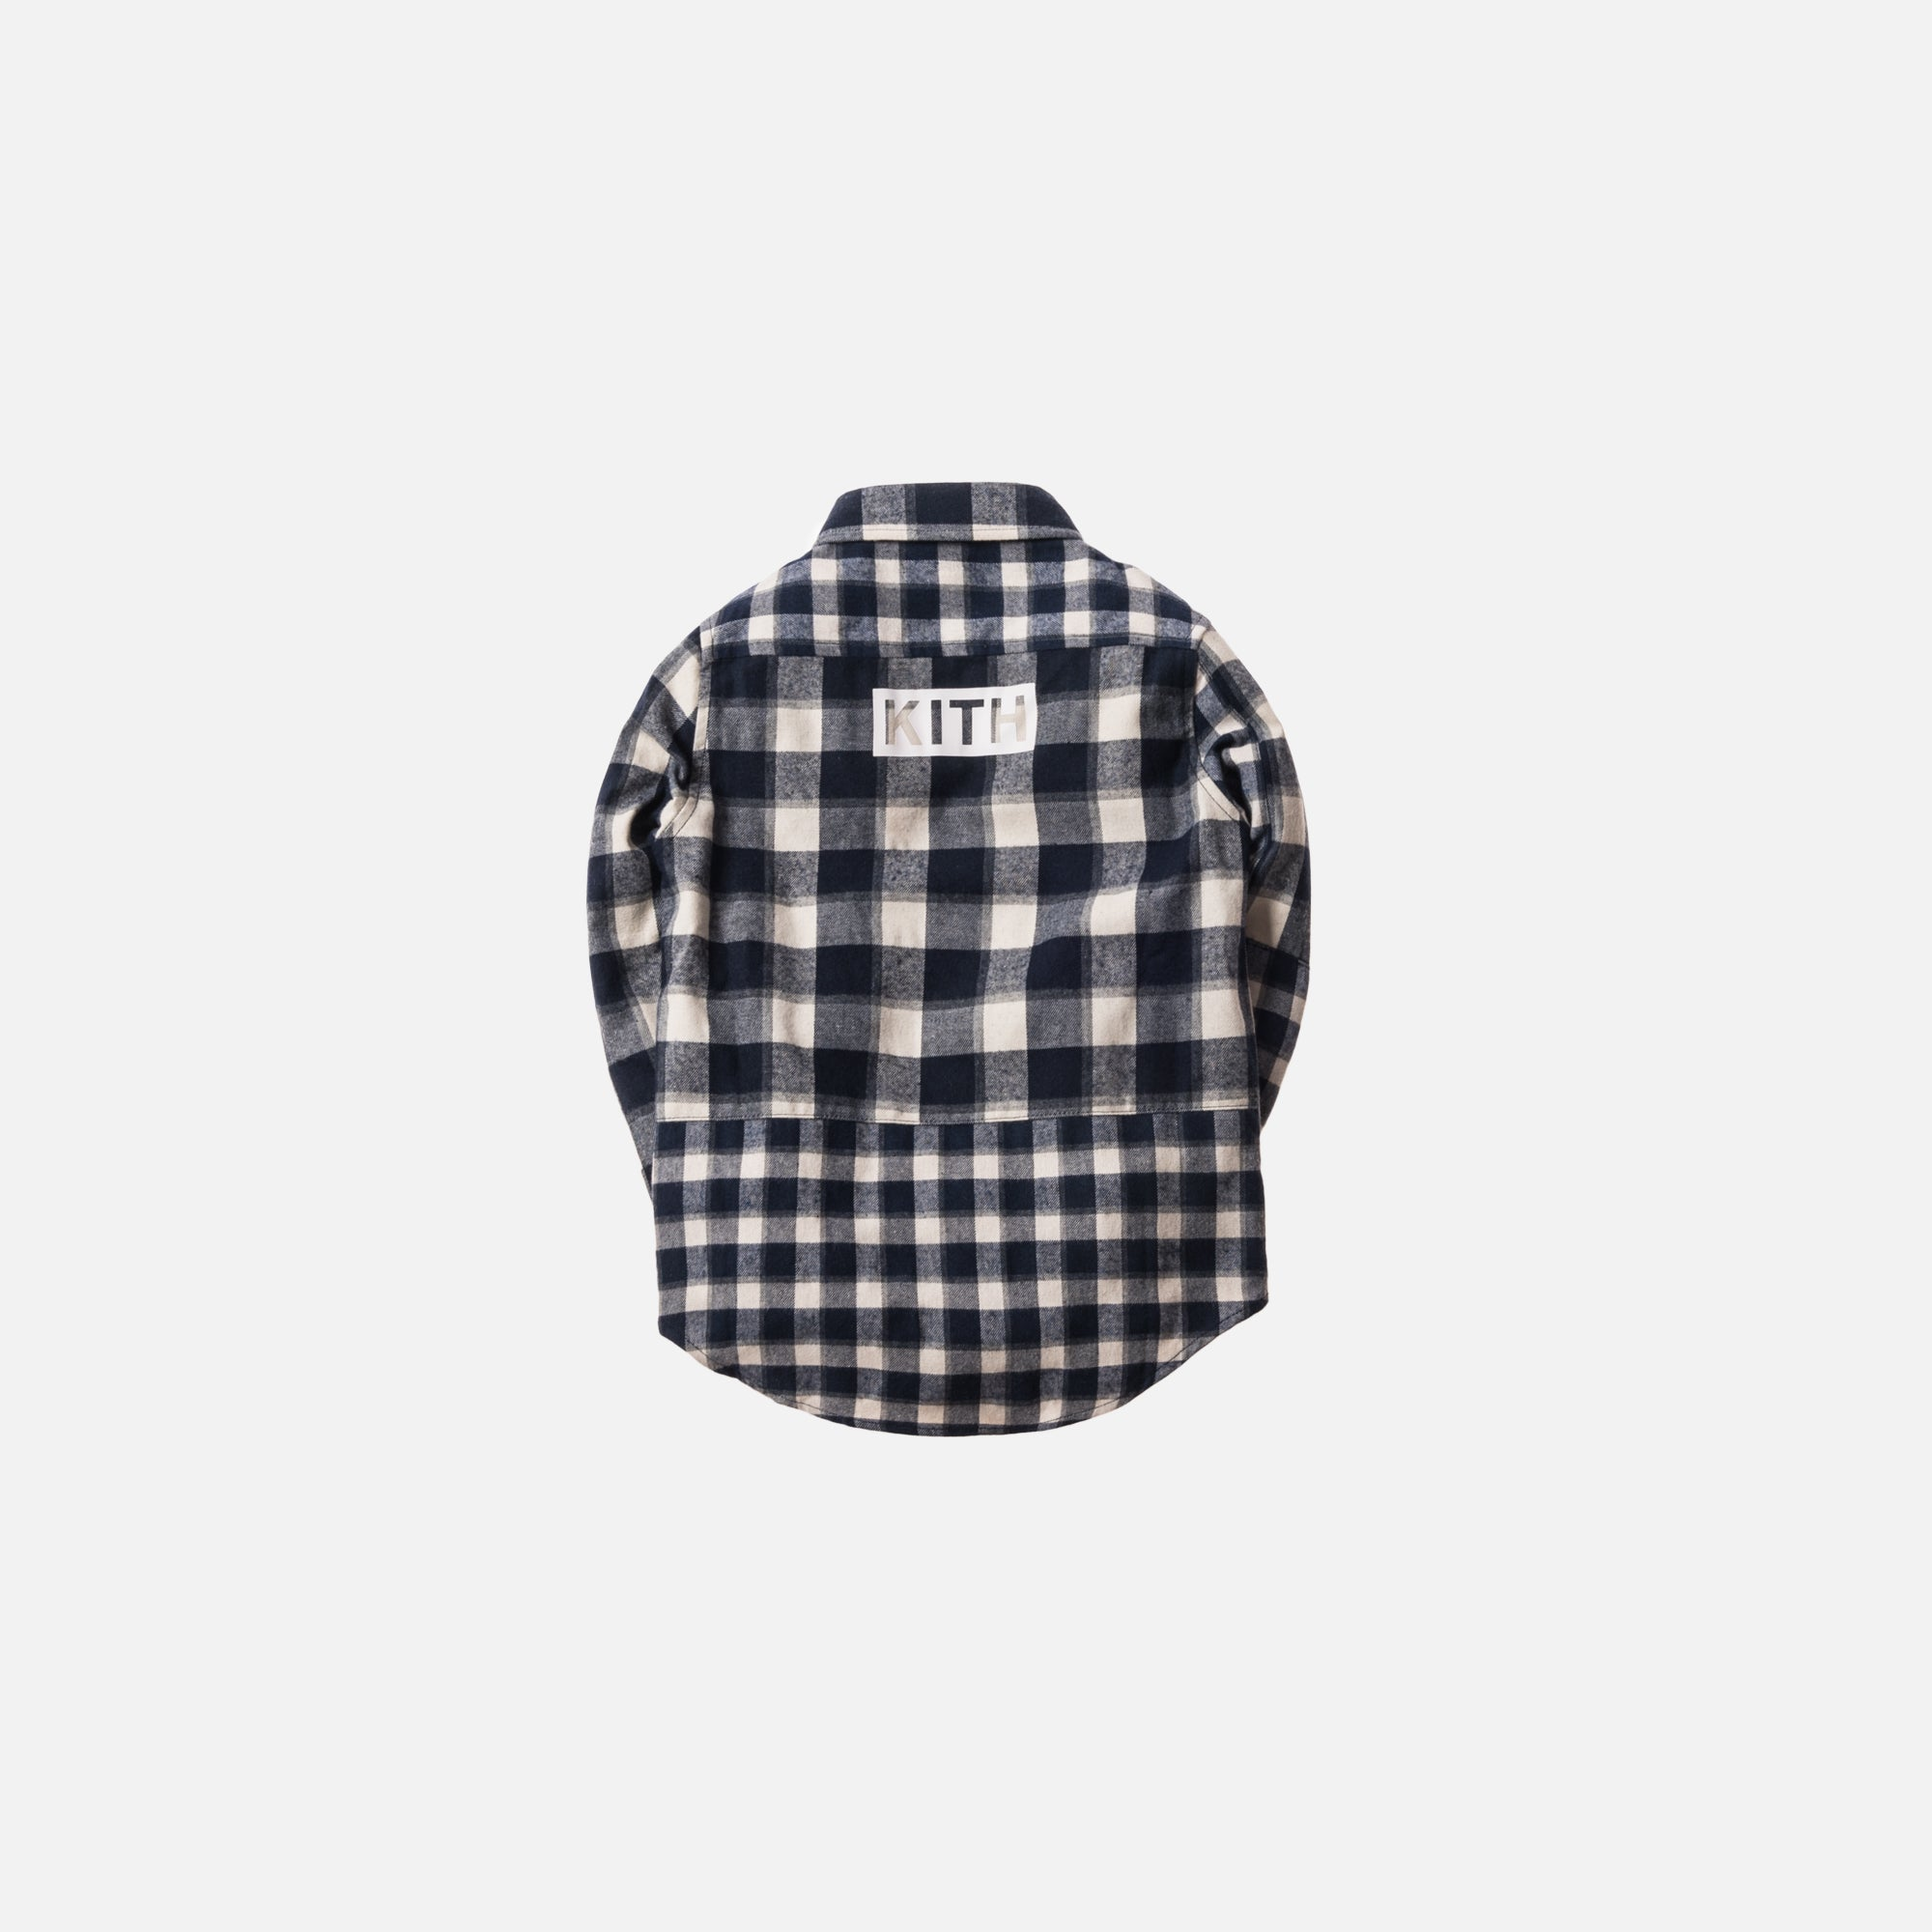 f7425cc615652 Kith Kids Mixed Plaid Ginza Button-Up - Navy